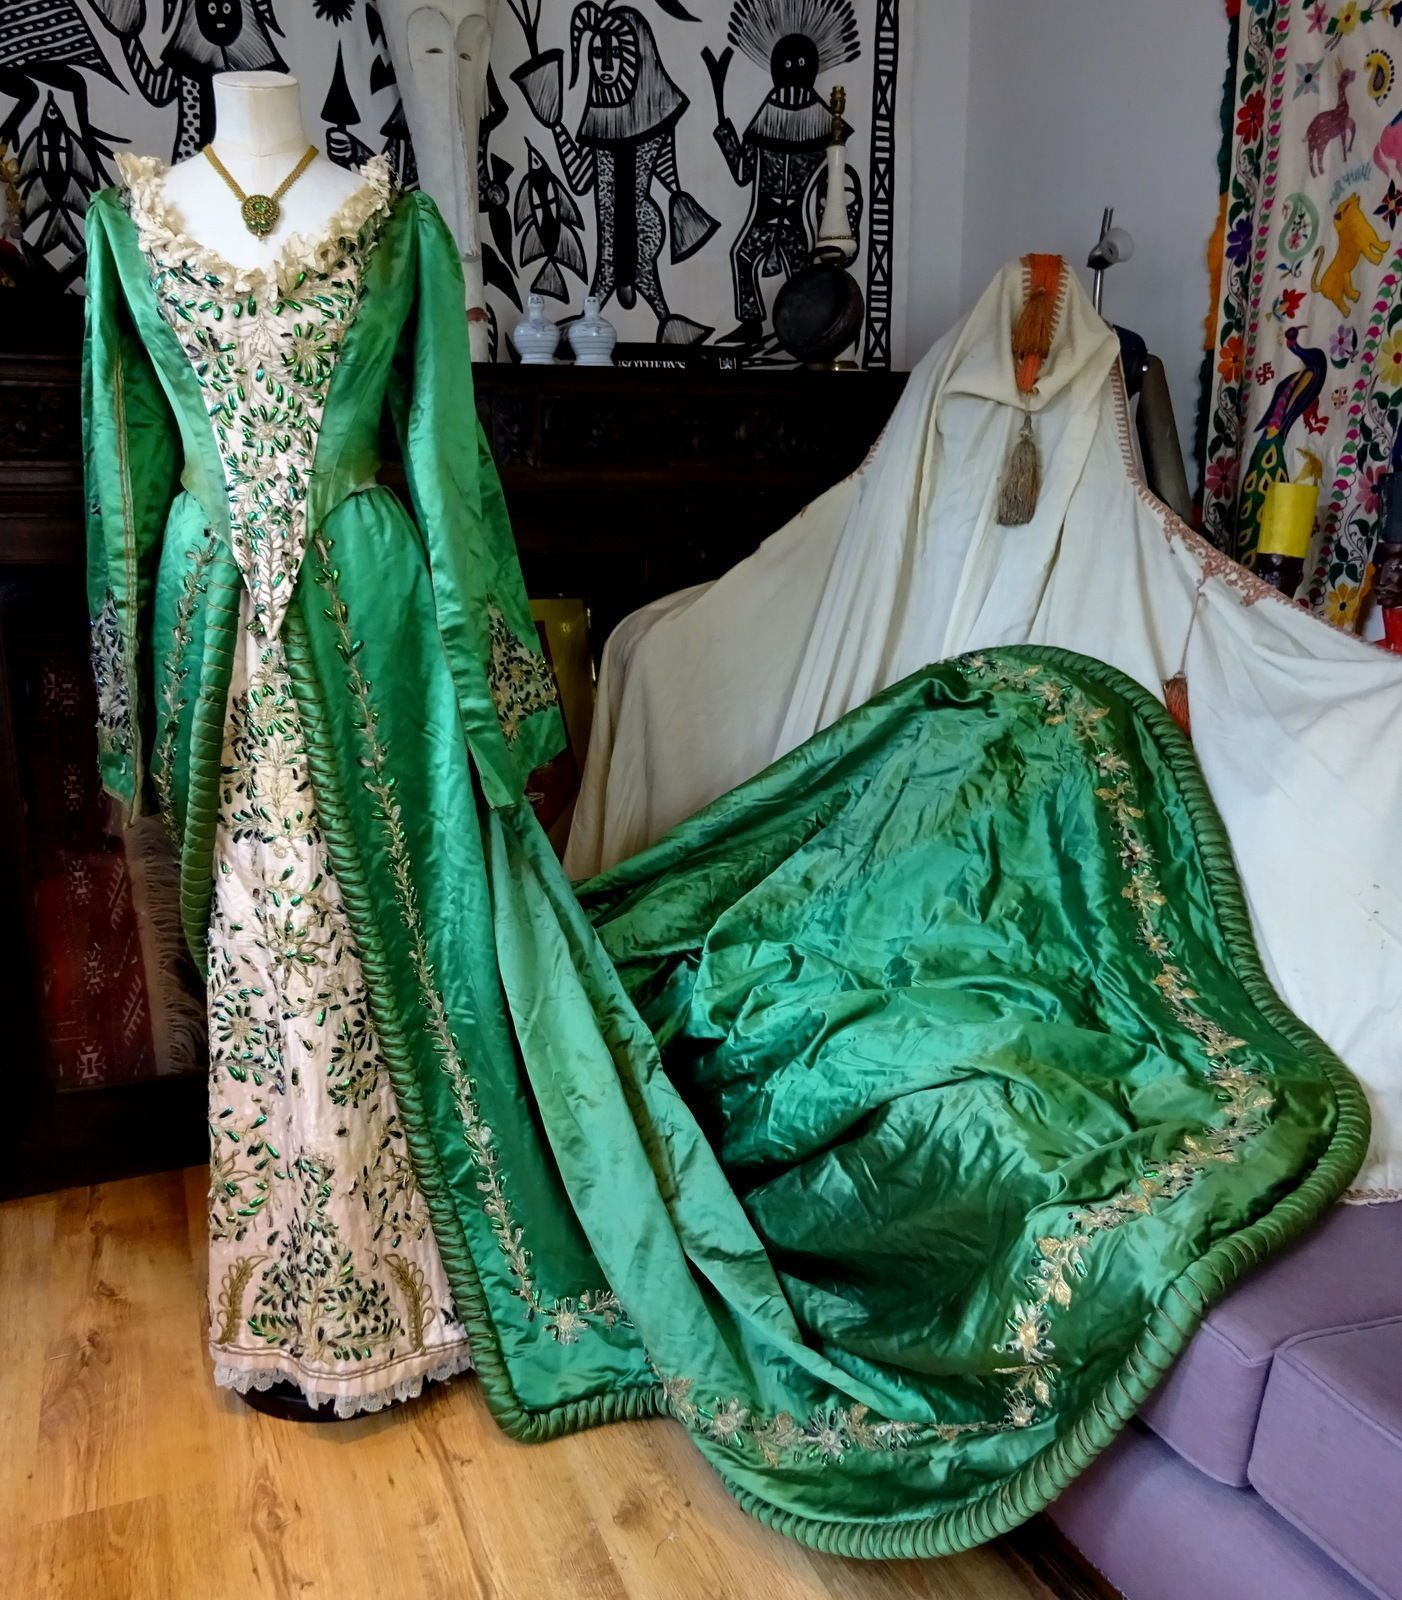 Authentic Victorian English Emerald Court Dress Calcutta Beetle Wing Embroidery | eBay #englishdresses1880 Authentic Victorian English Emerald Court Dress Calcutta Beetle Wing Embroidery | eBay #englishdresses1880 Authentic Victorian English Emerald Court Dress Calcutta Beetle Wing Embroidery | eBay #englishdresses1880 Authentic Victorian English Emerald Court Dress Calcutta Beetle Wing Embroidery | eBay #englishdresses1880 Authentic Victorian English Emerald Court Dress Calcutta Beetle Wing Emb #englishdresses1880